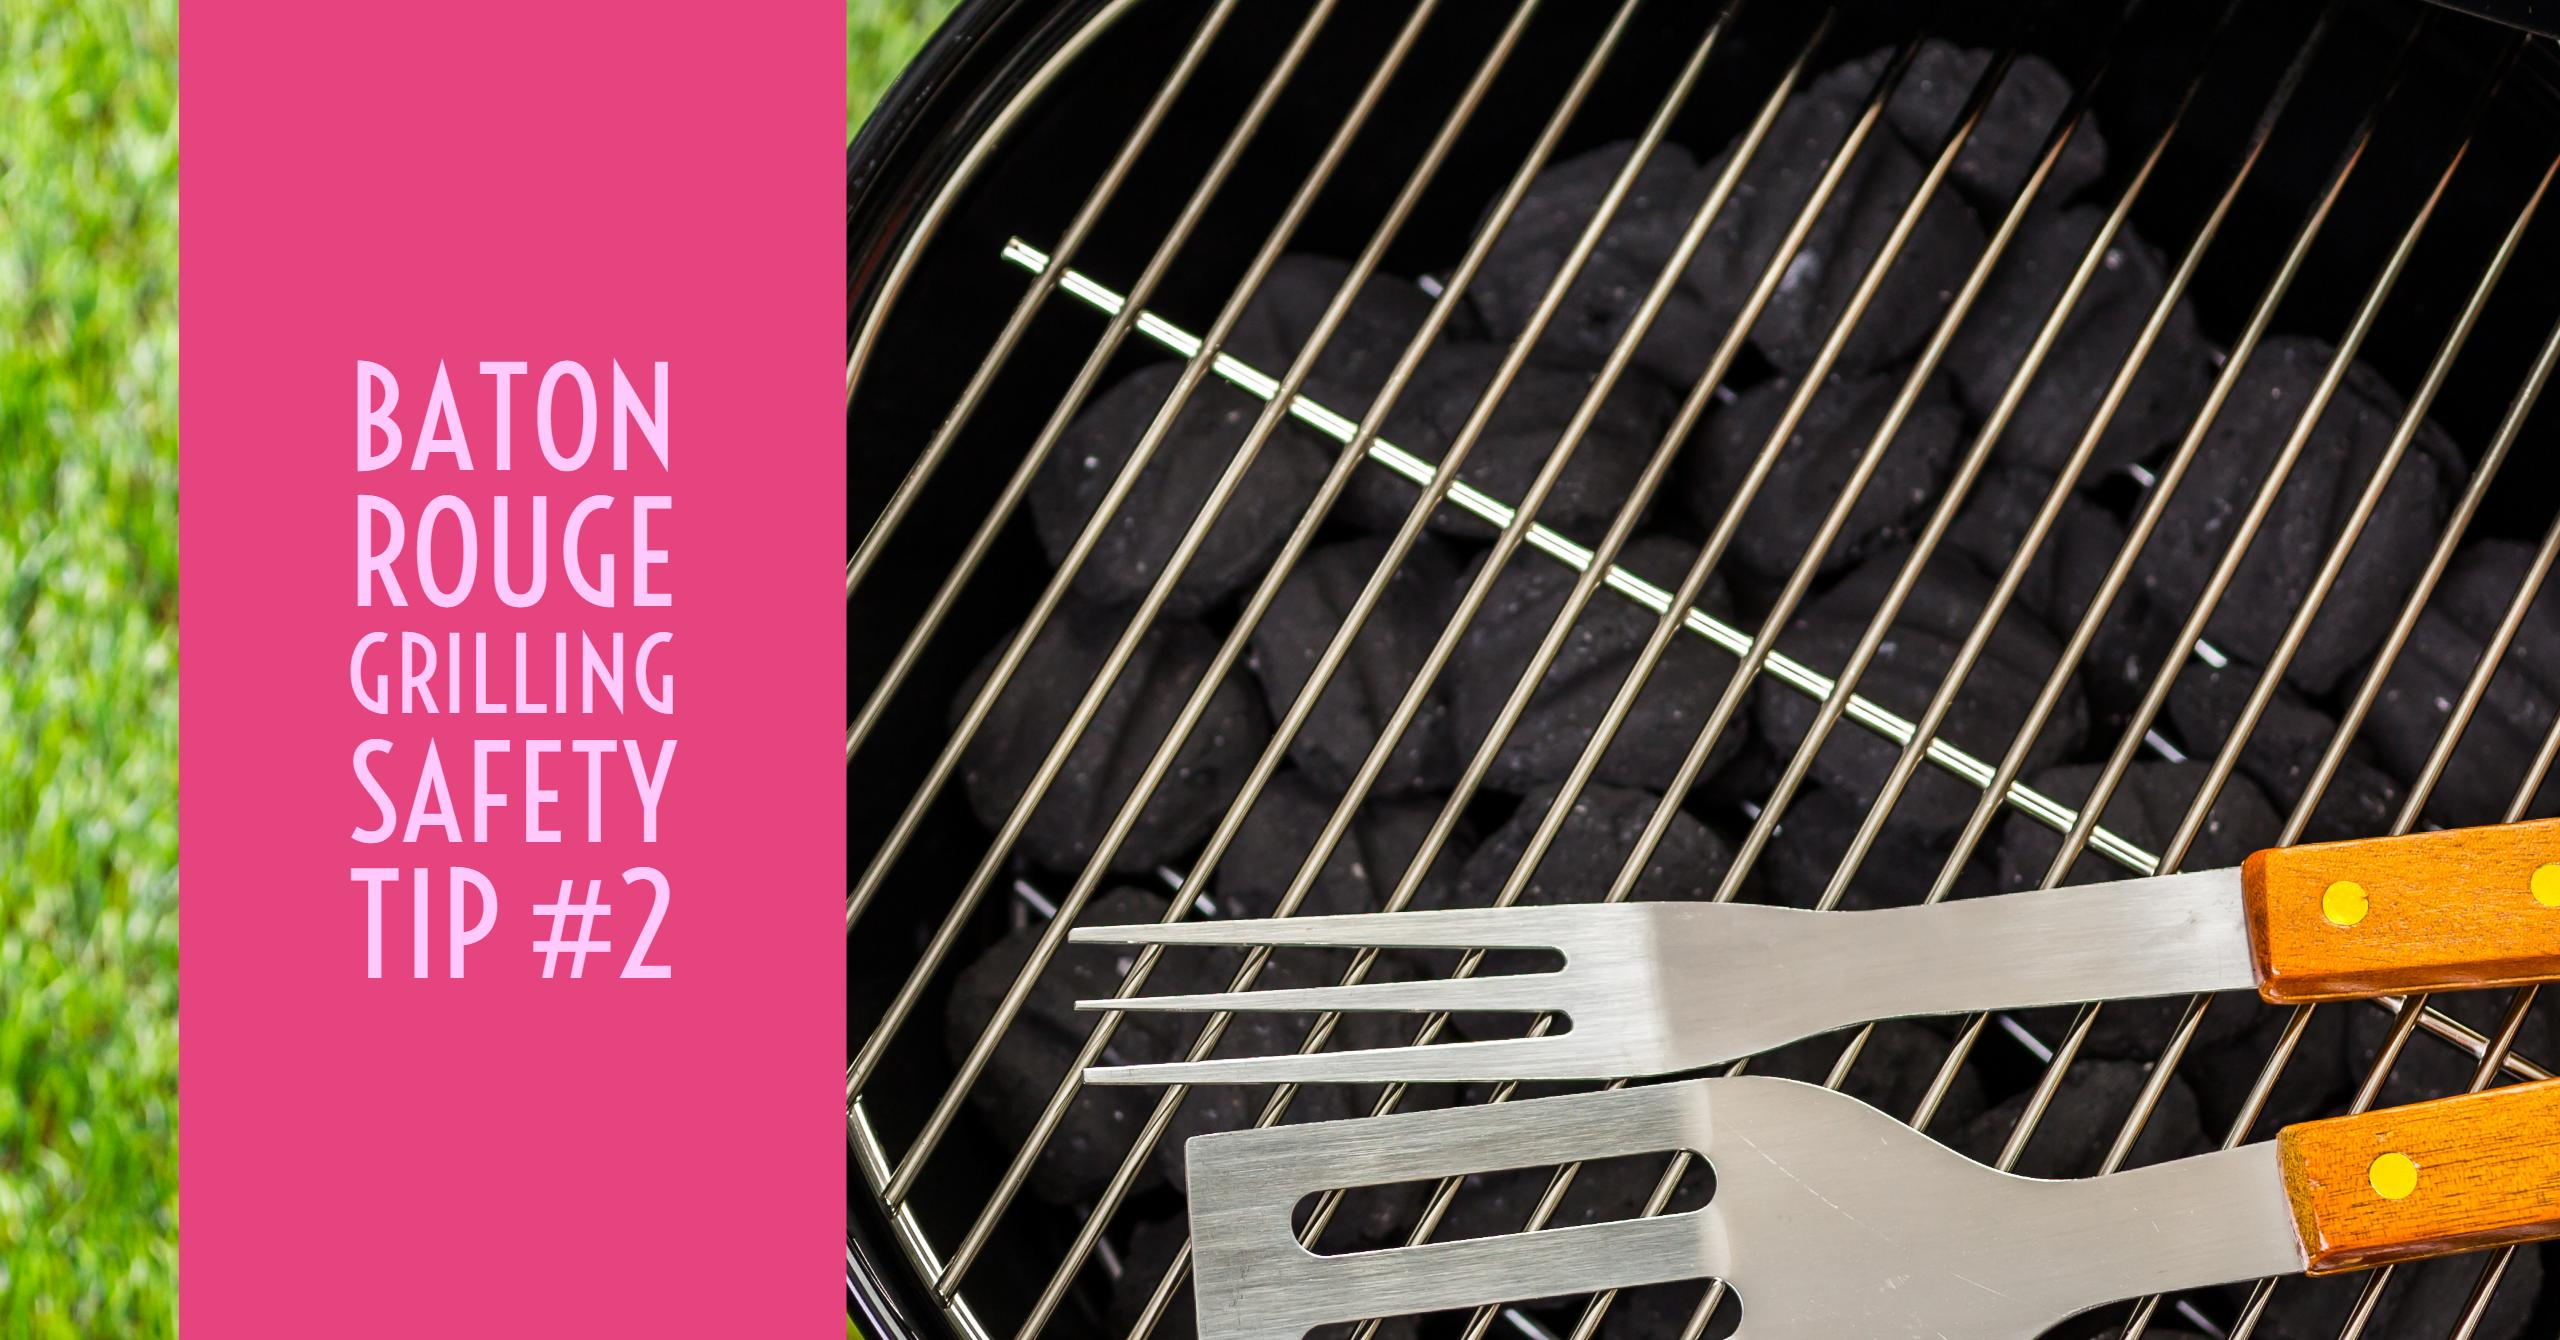 Baton Rouge Grilling Safety Tip Check Grill Parts for Excessive Rust or Corrosion.jpg